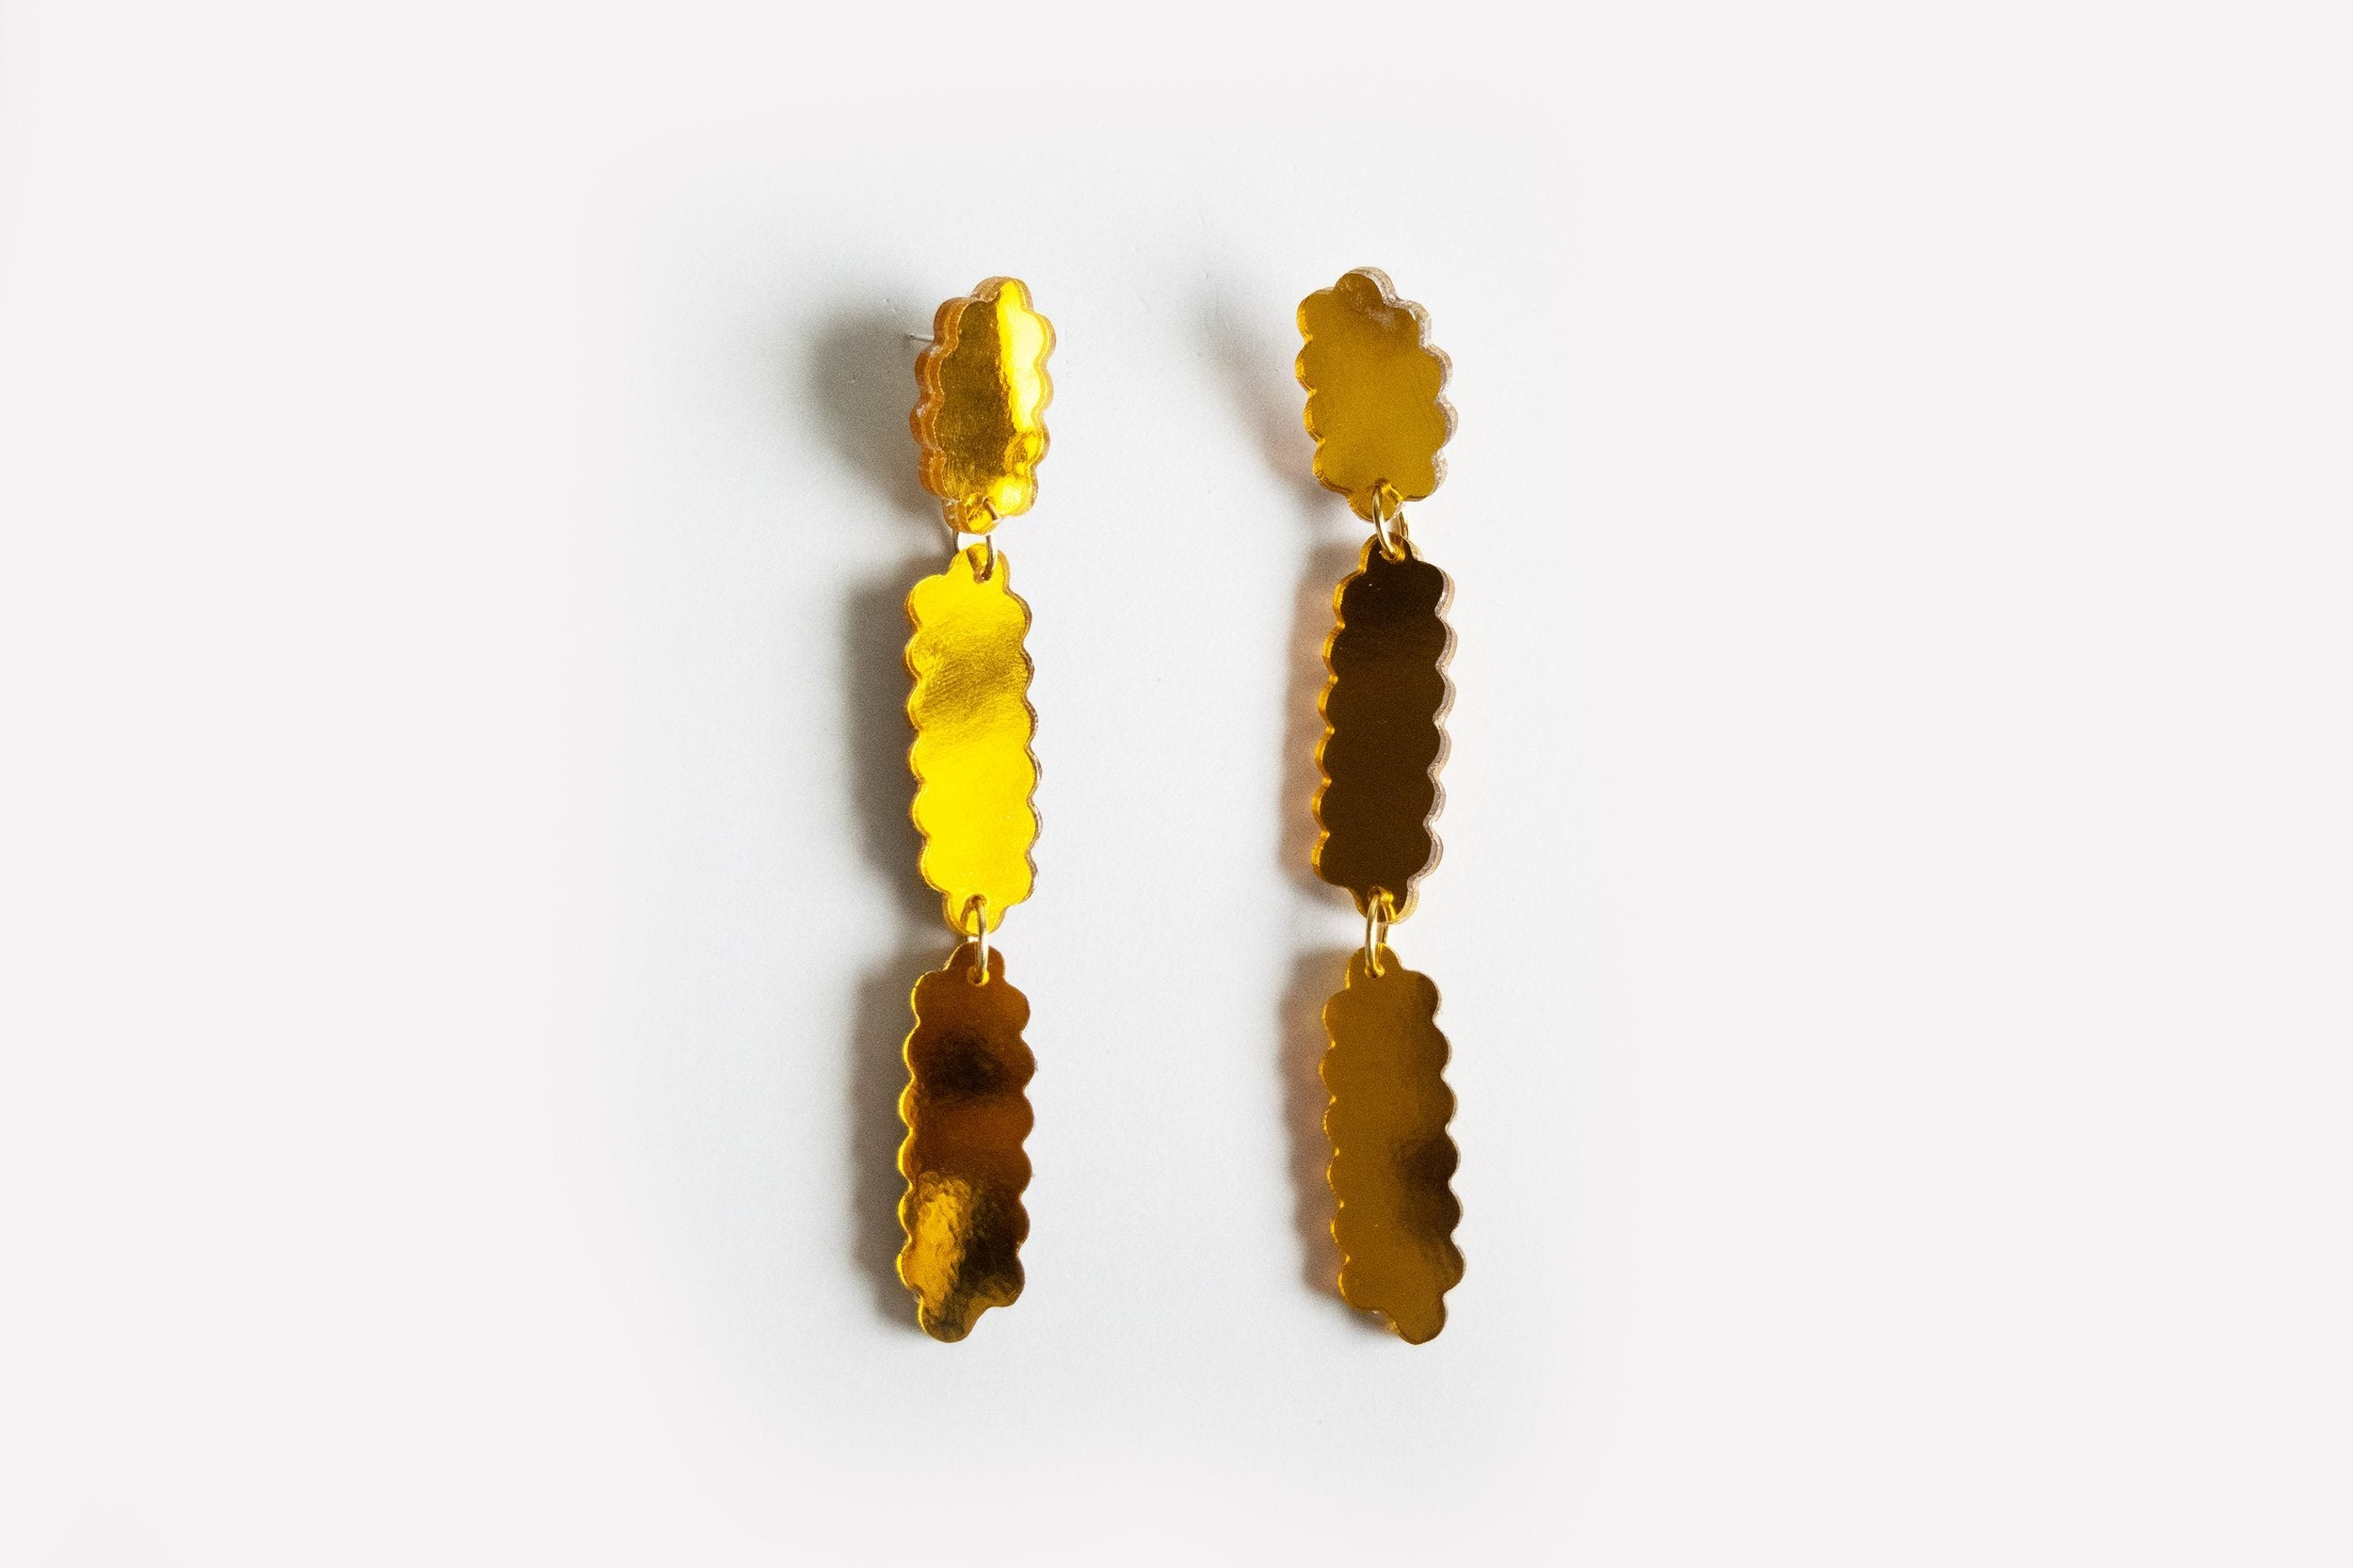 Ecoresin Scallop Earrings - Line Drop